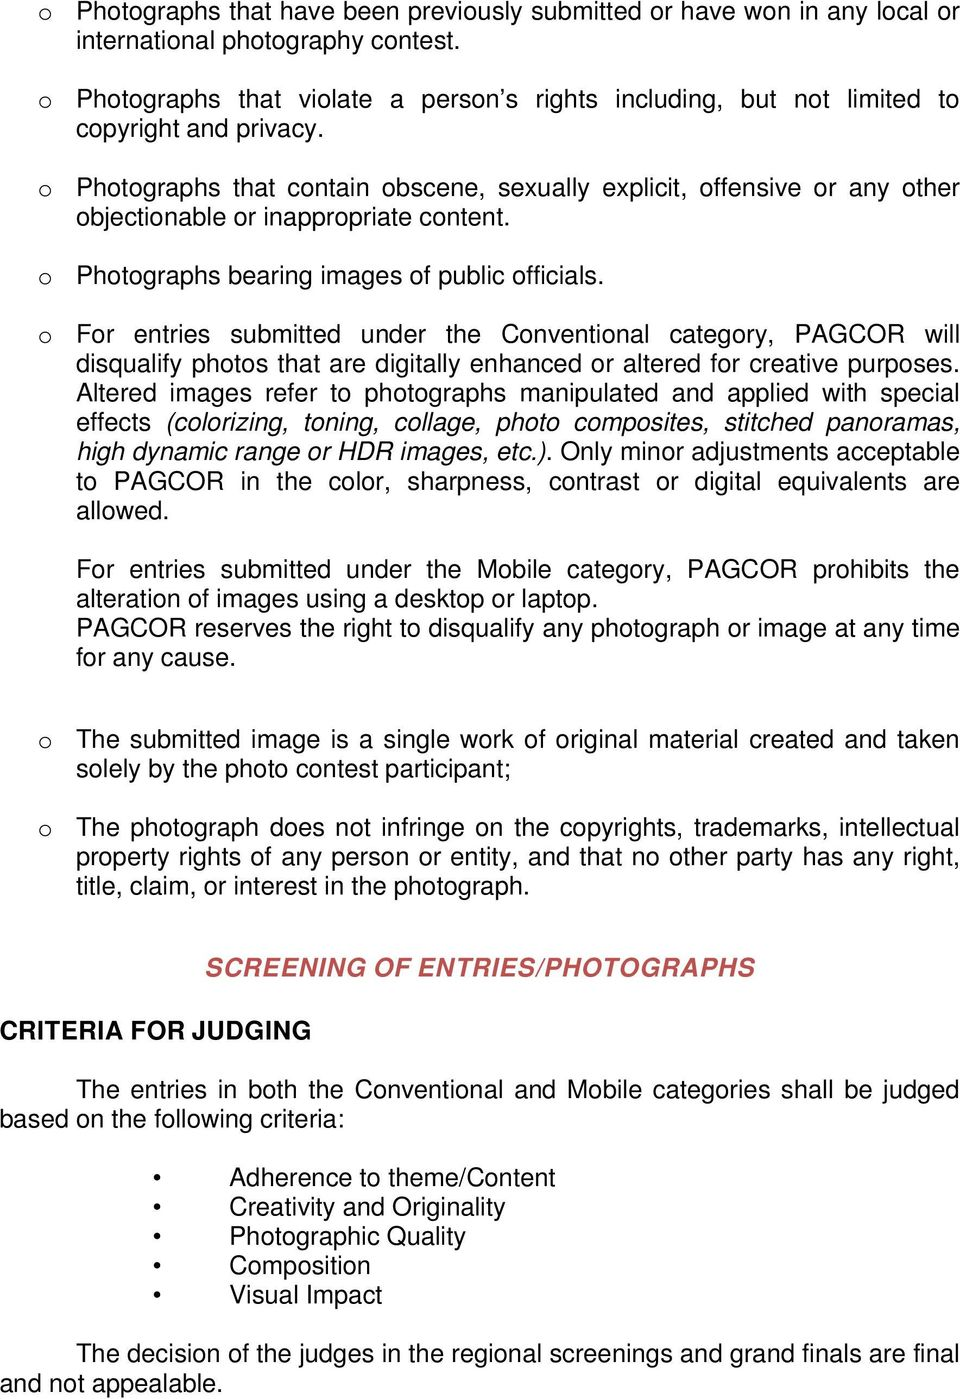 o Photographs that contain obscene, sexually explicit, offensive or any other objectionable or inappropriate content. o Photographs bearing images of public officials.